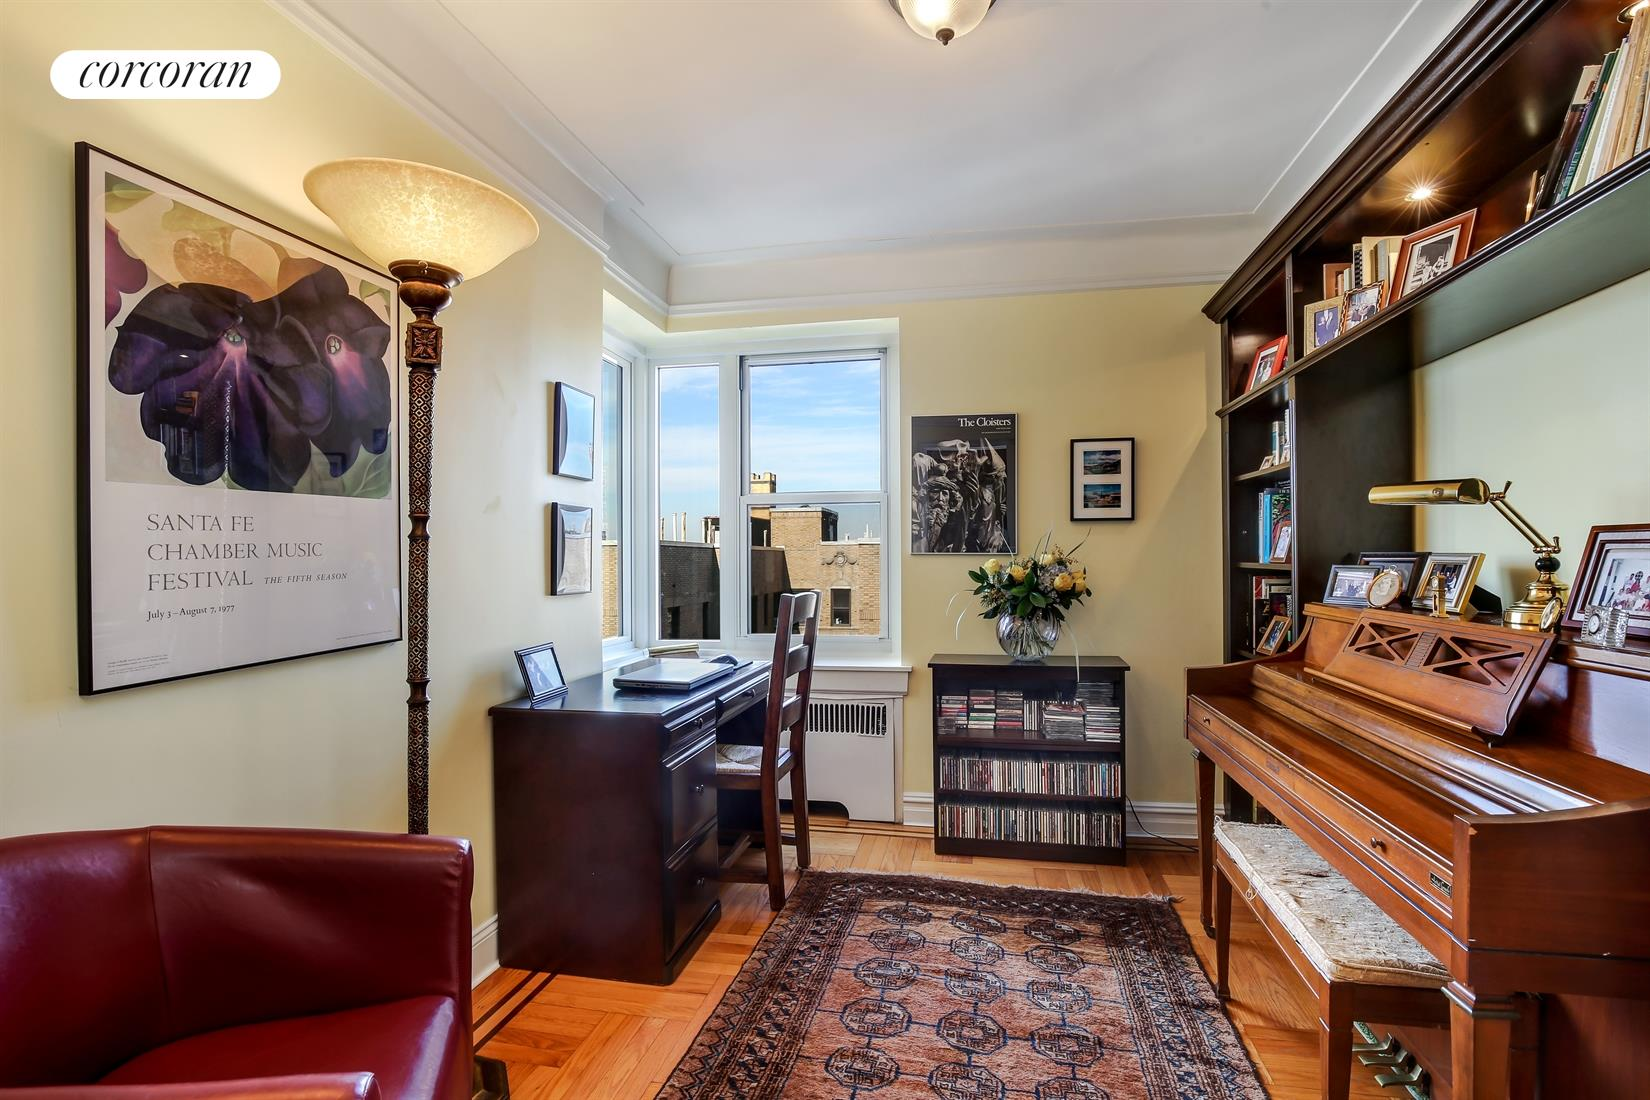 Exceptionnel 250 CABRINI BOULEVARD, 8C, Living/Dining Room